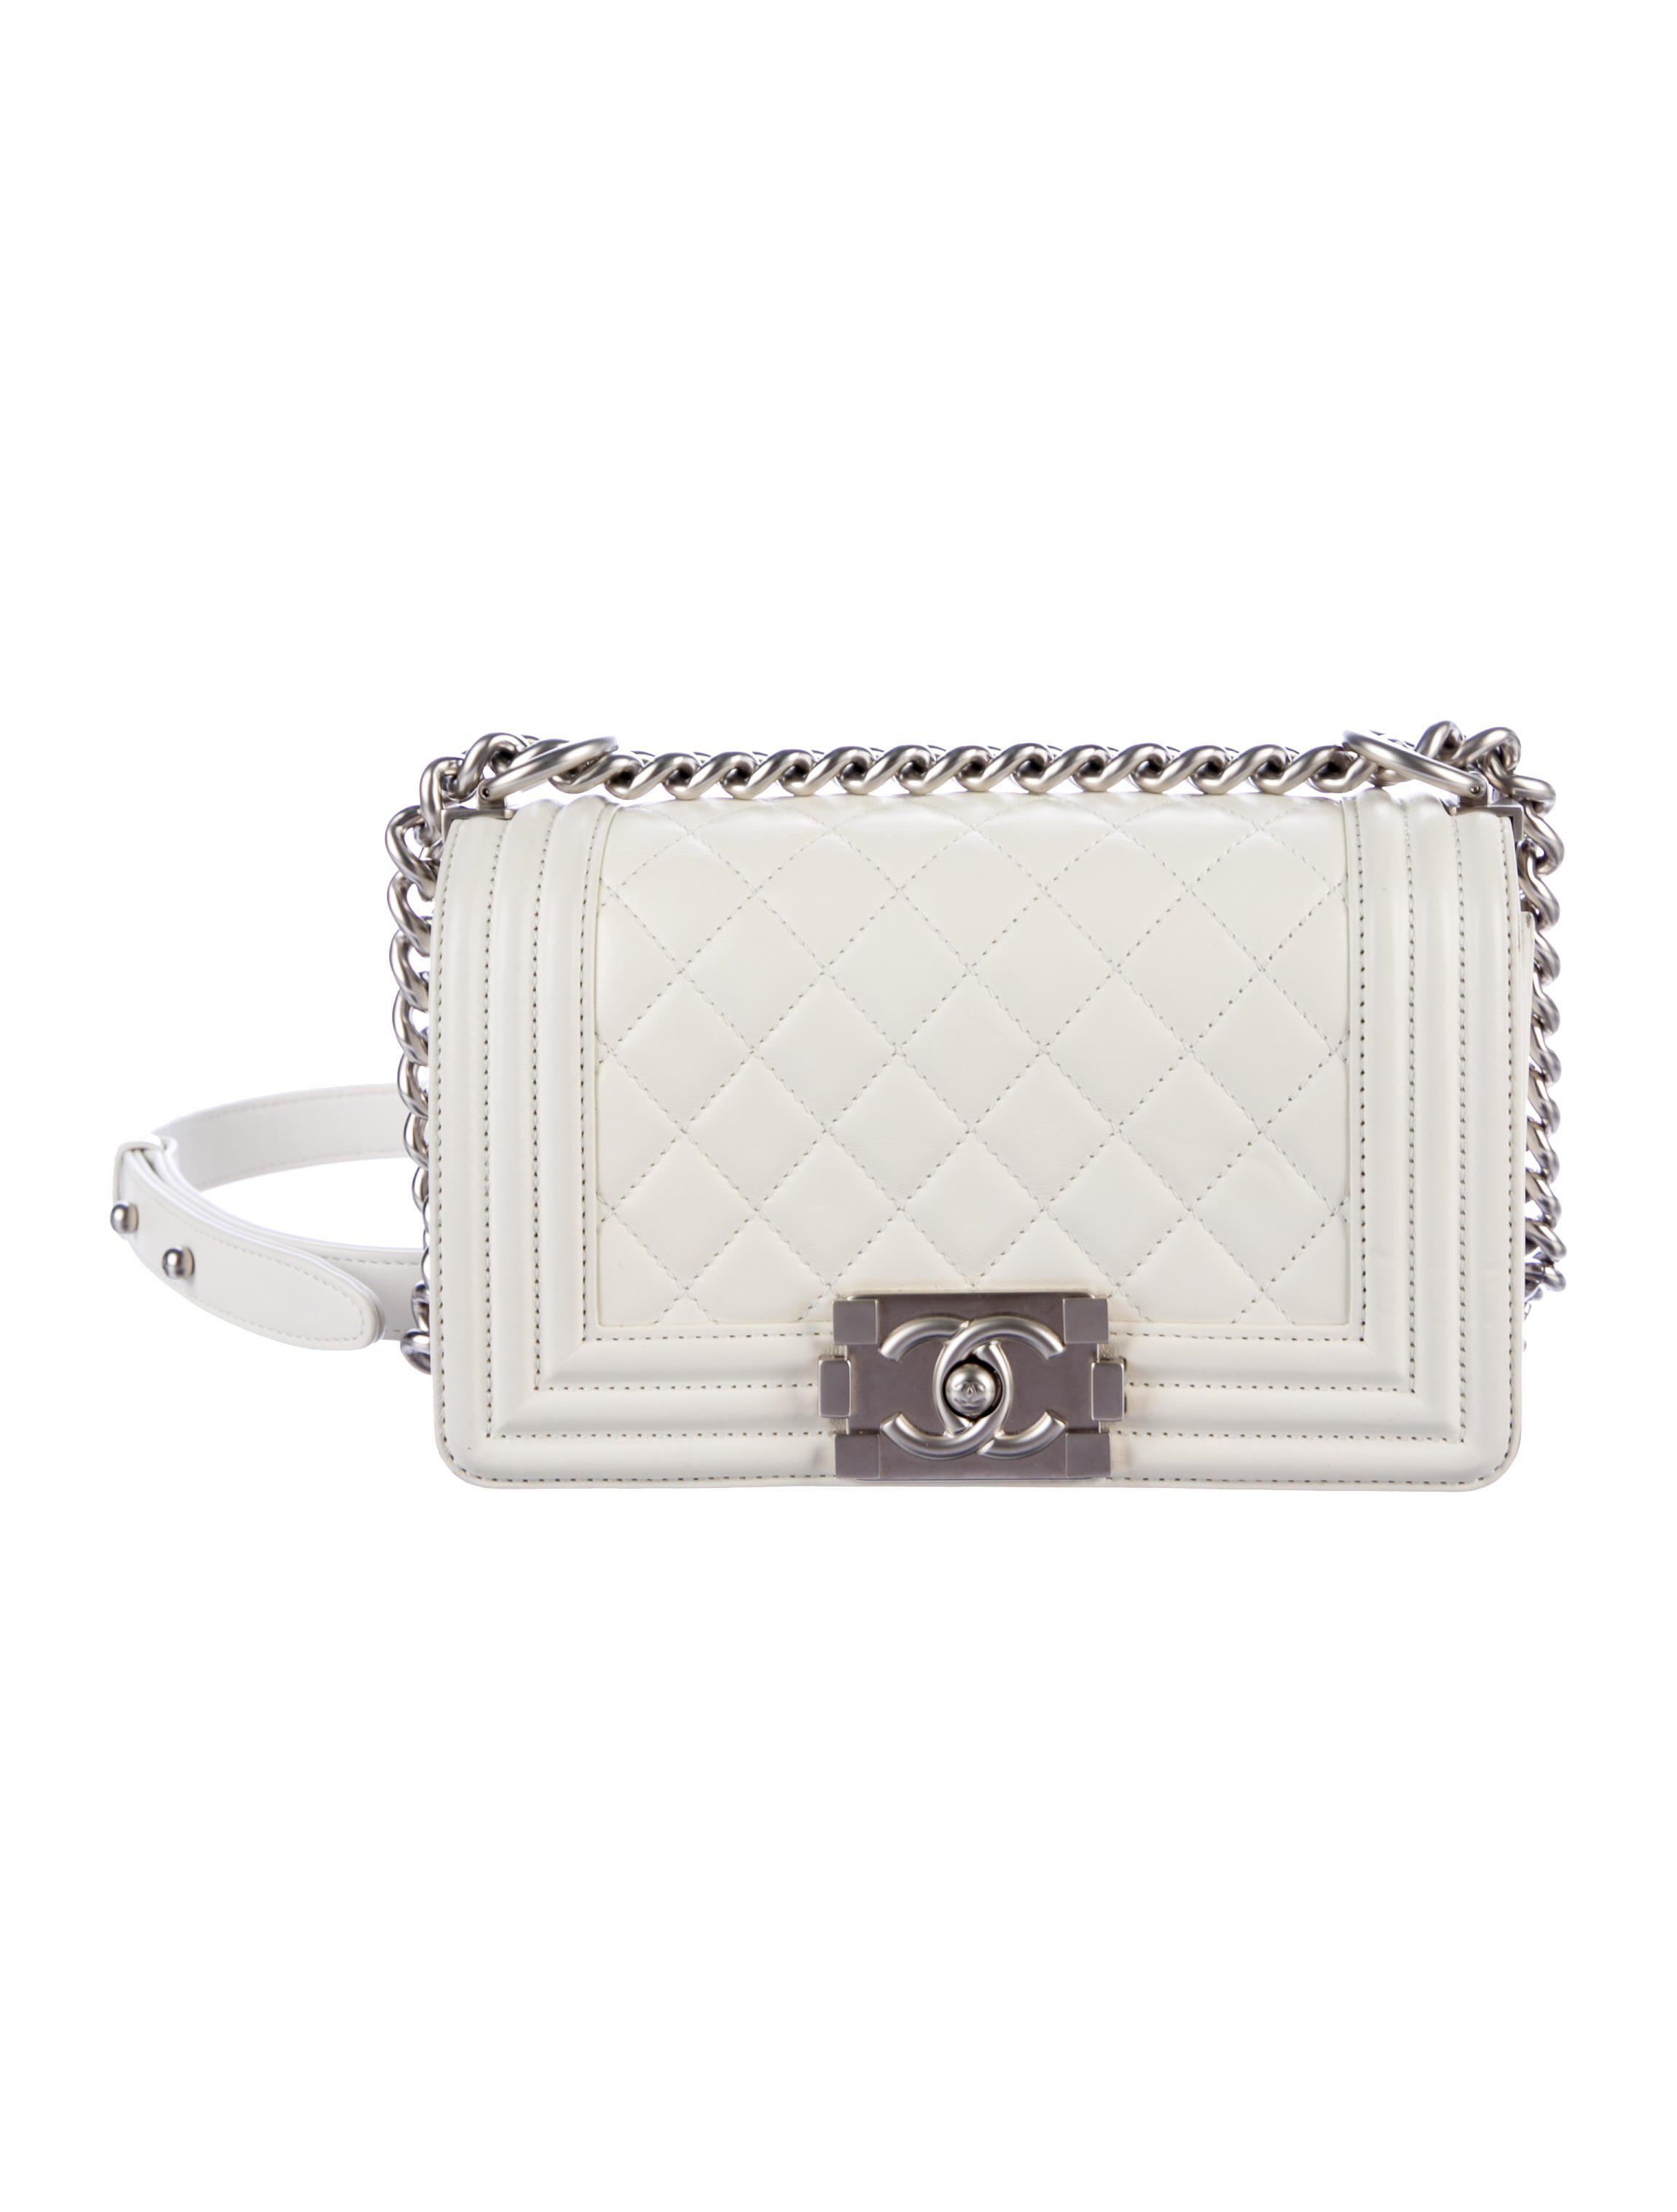 45f43c09ddb Chanel Mini Suitcase Purse - New image Of Purse